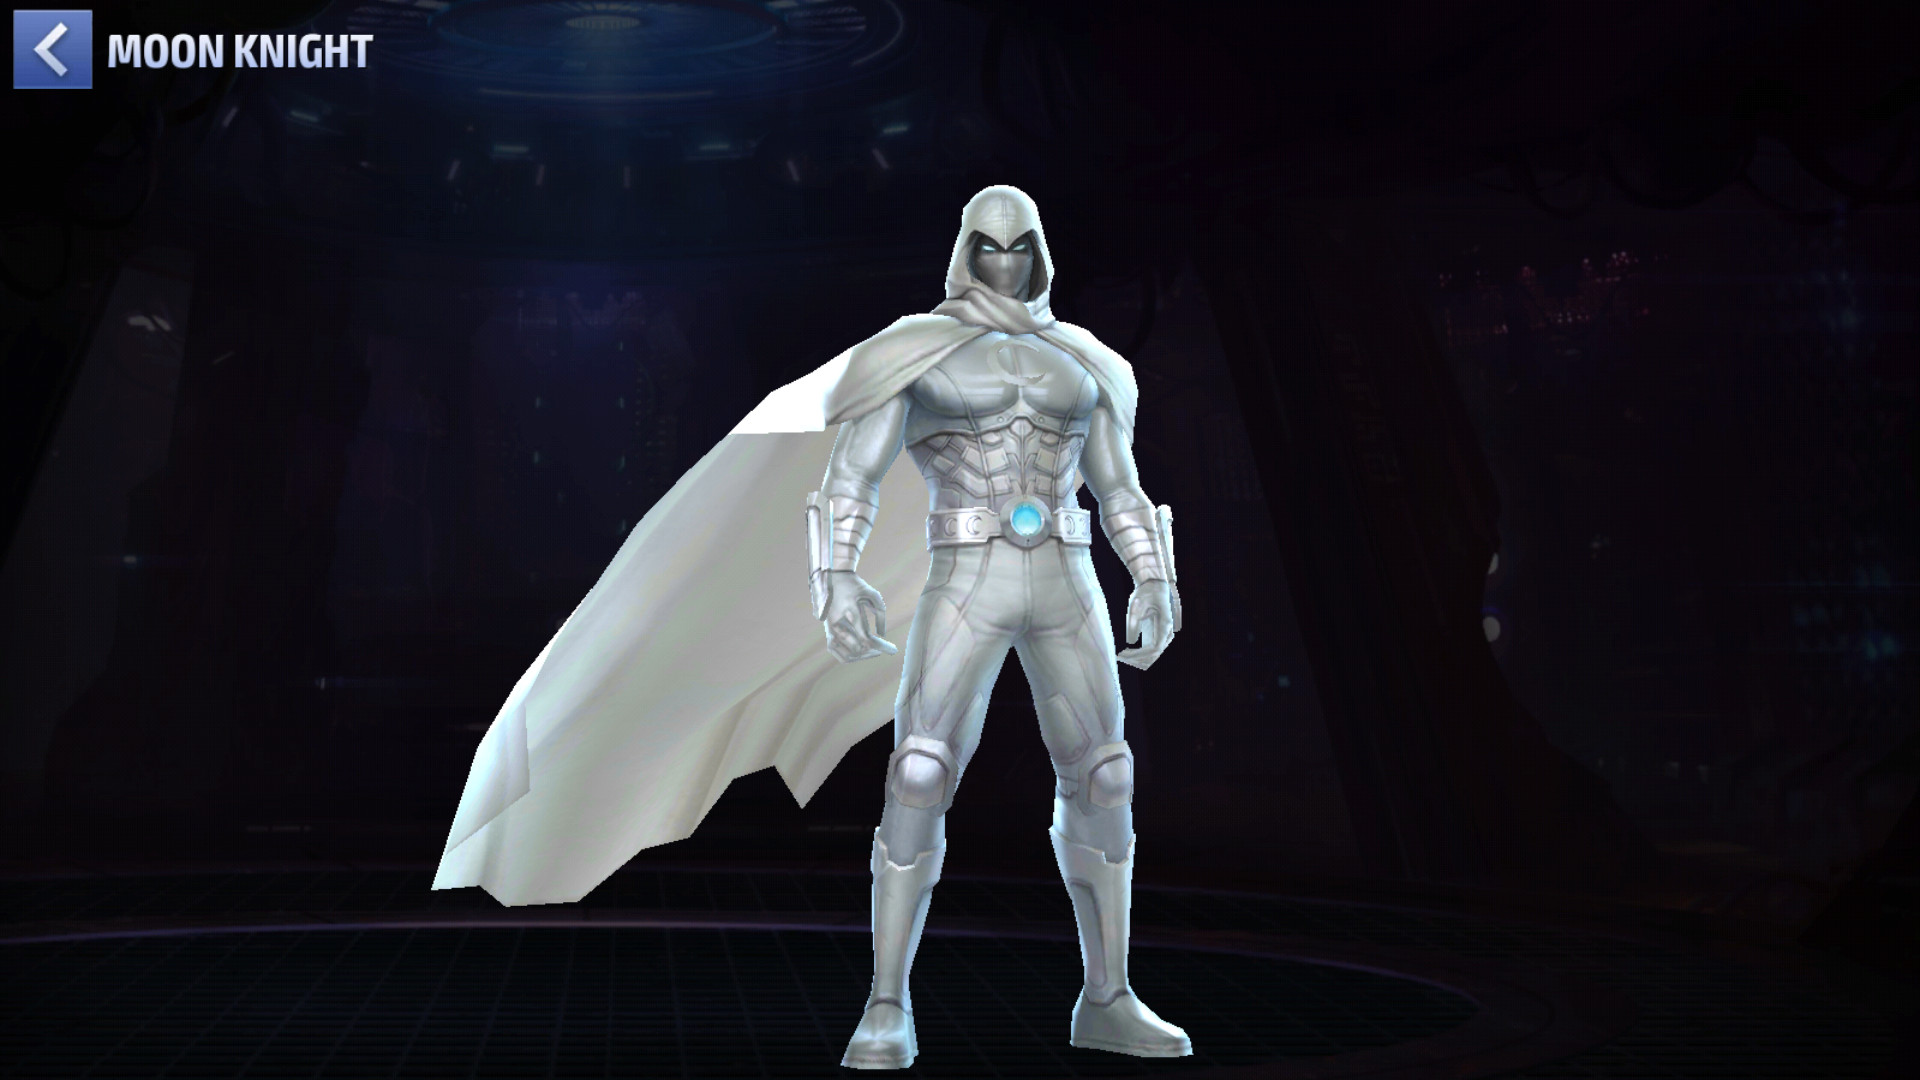 Le point fort de Batma... Moon Knight est qu'il heal quasi continuellement